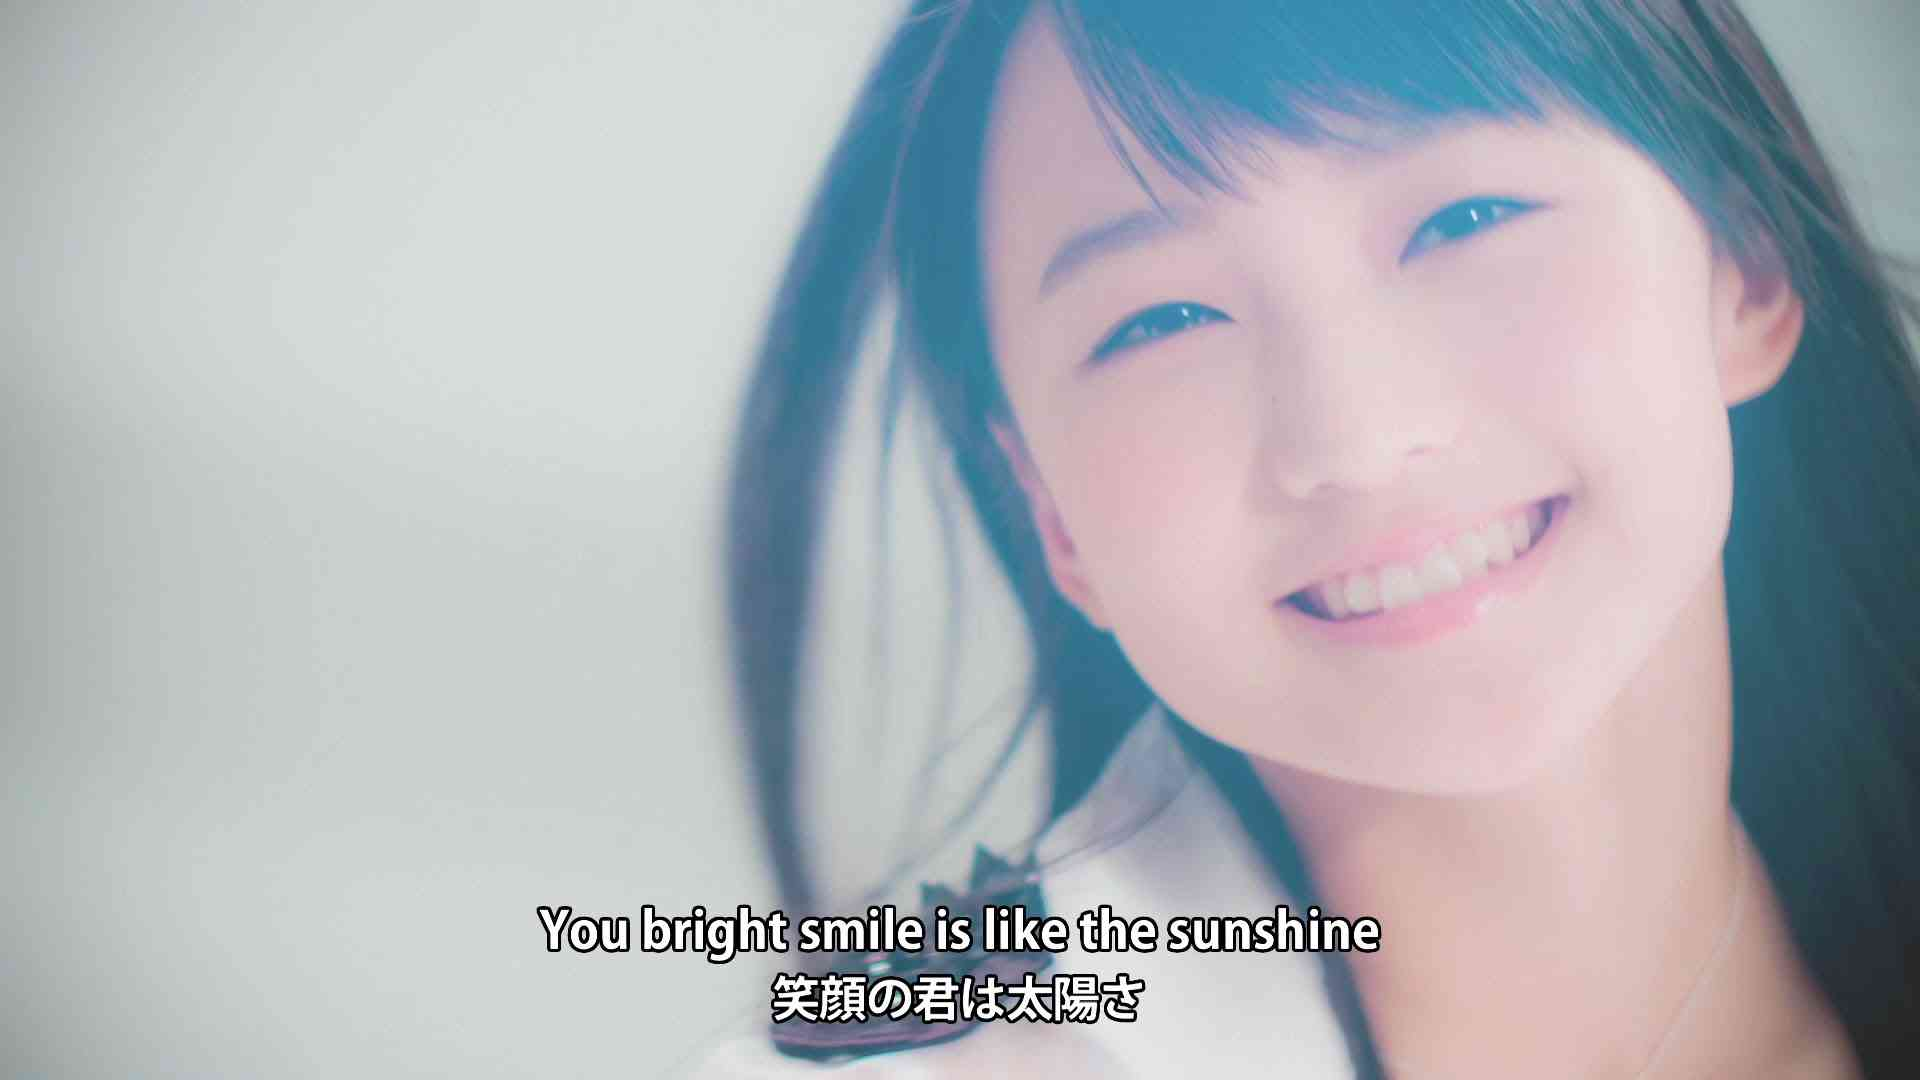 モーニング娘。'14 『笑顔の君は太陽さ』(Morning Musume。'14[You bright smile is like the sunshine]) (MV) - YouTube